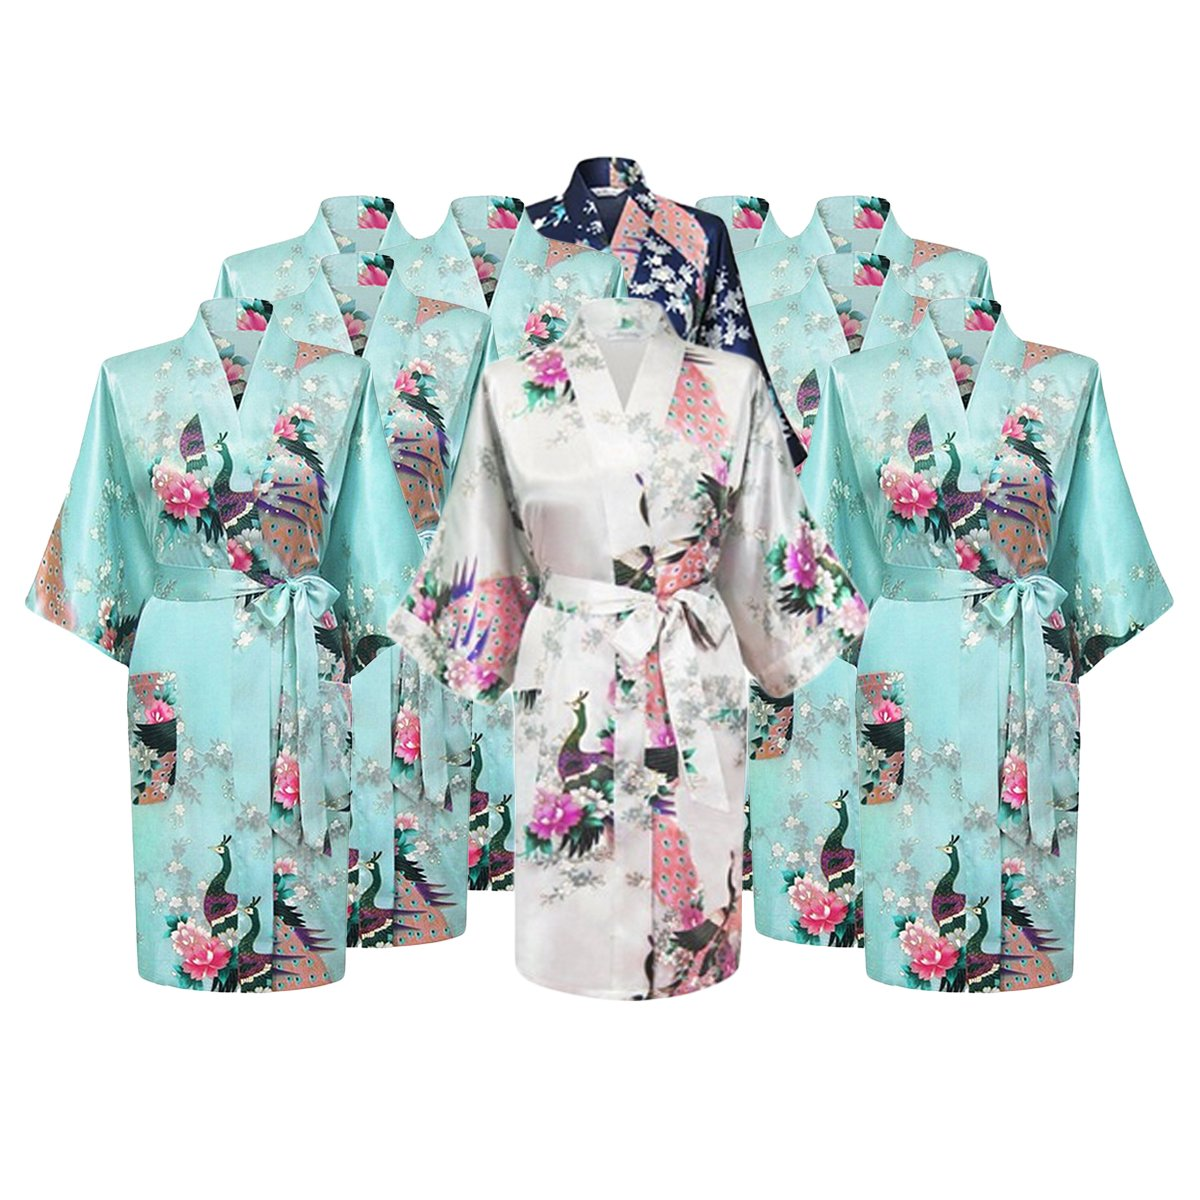 Gifts Are Blue Floral Bridal Party Bride & Bridesmaid Robe Sets, Sizes 2 To 20 (Set Of 10)